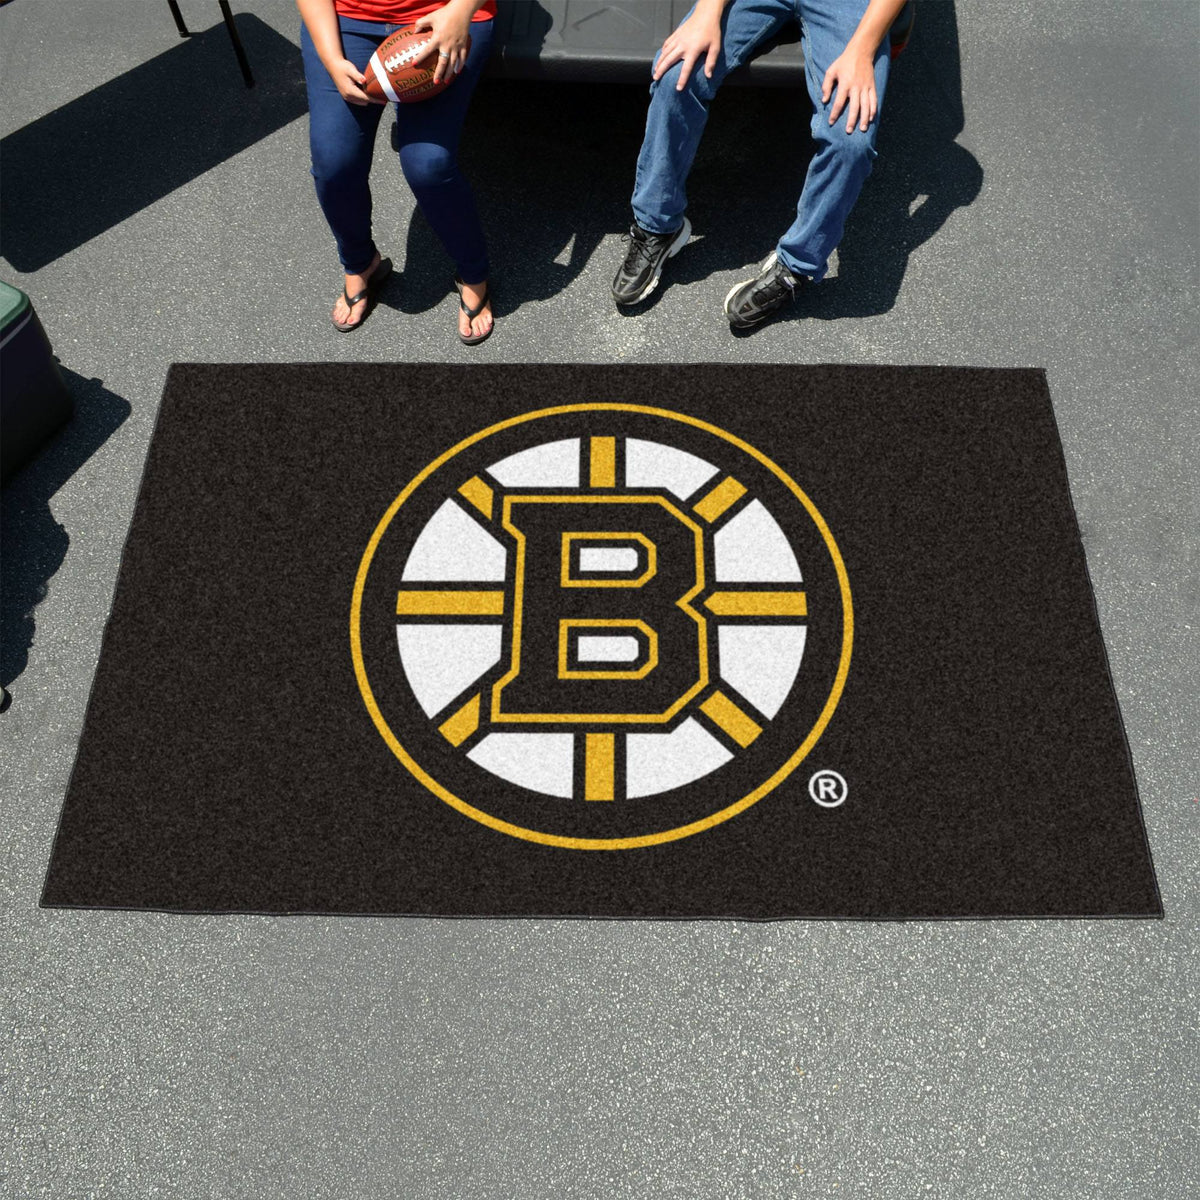 NHL - Ulti-Mat NHL Mats, Rectangular Mats, Ulti-Mat, NHL, Home Fan Mats Boston Bruins